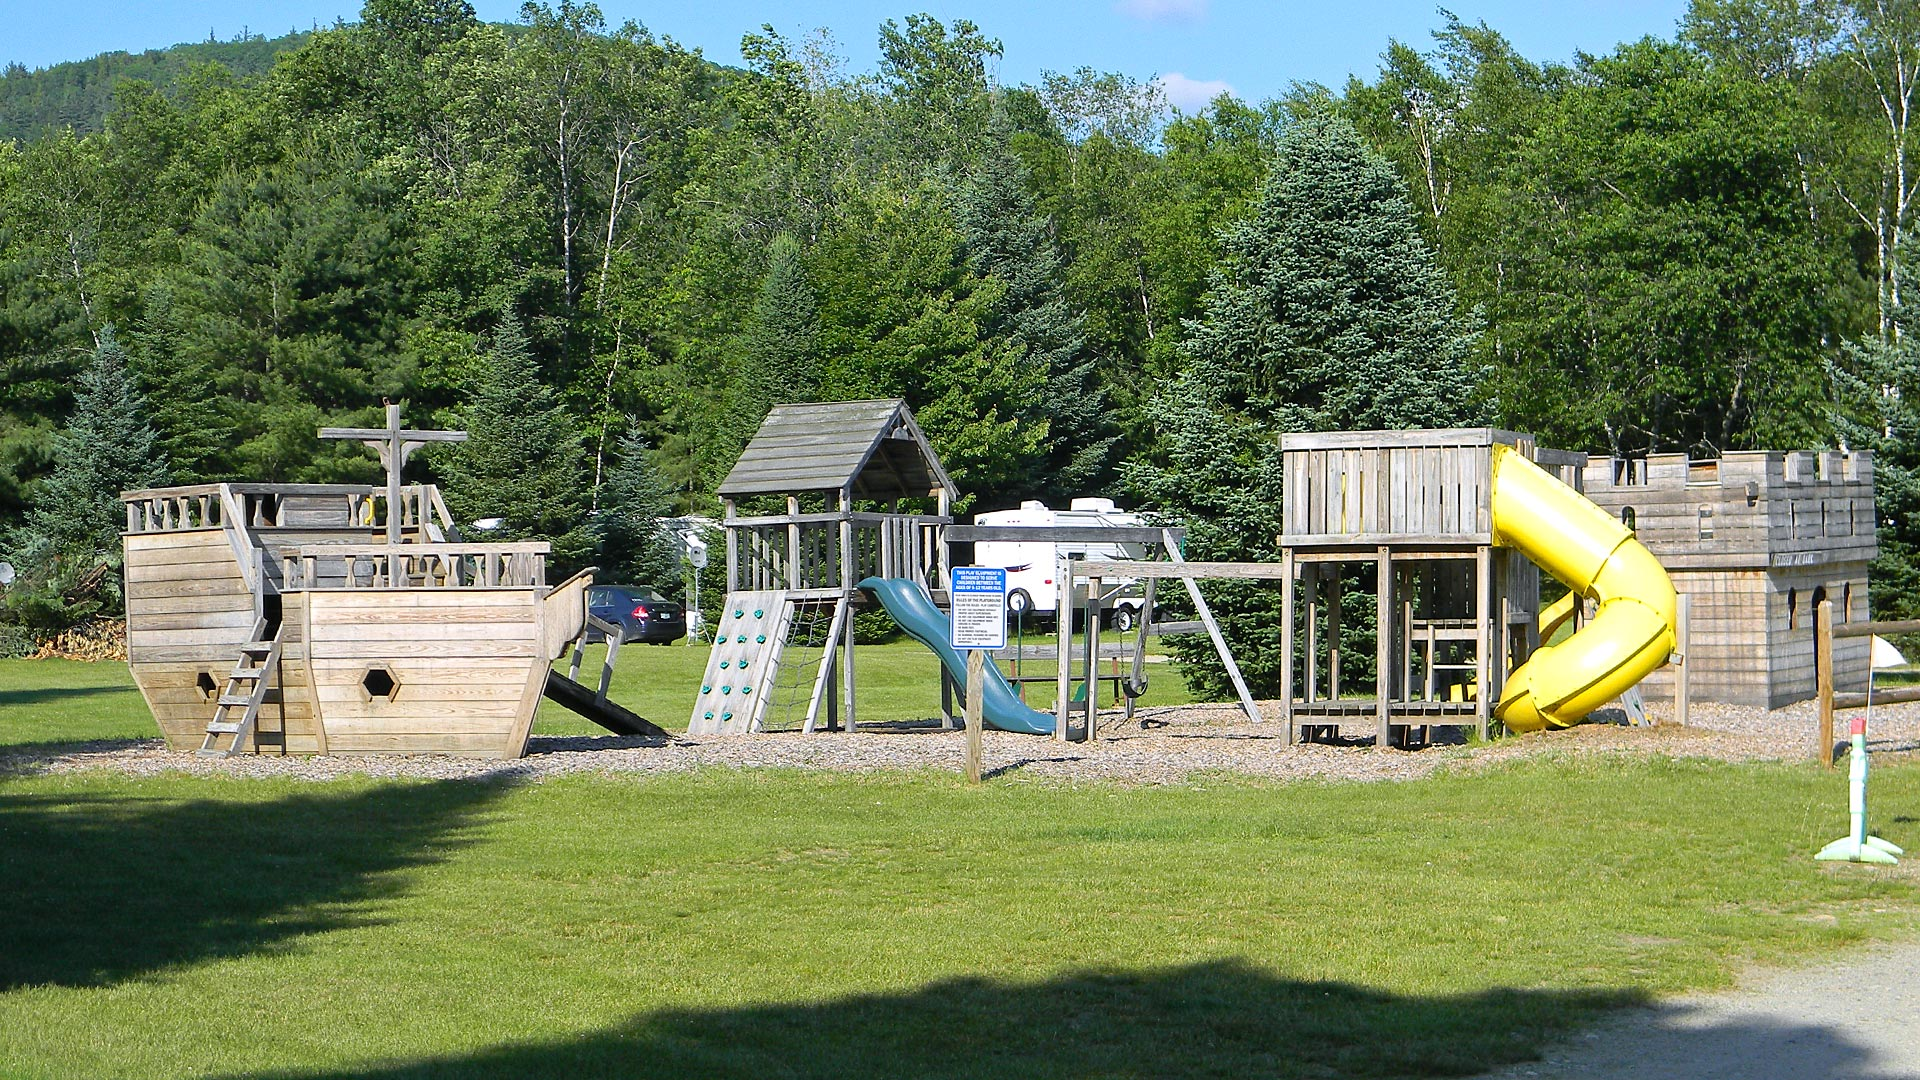 Playground at Scenic View Campground.